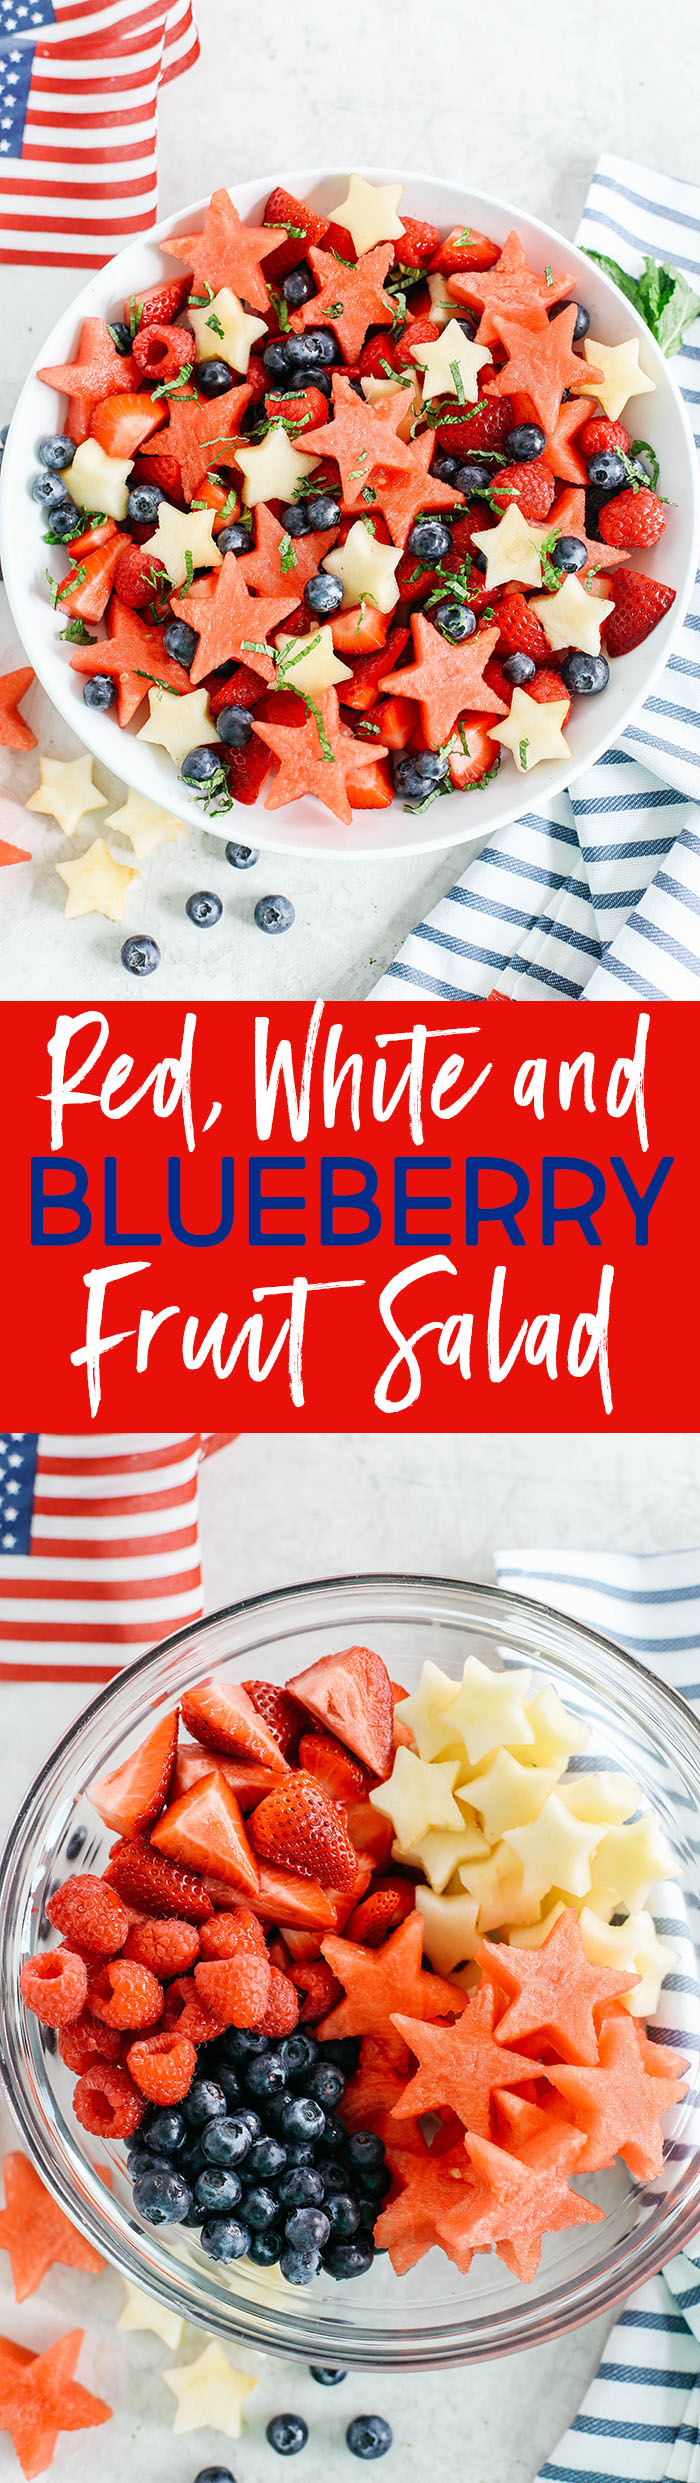 Kick off the 4th of July weekend with this festive Red, White and Blueberry Fruit Salad packed juicy watermelon, crisp apples and delicious berries all tossed together in a honey-citrus dressing!